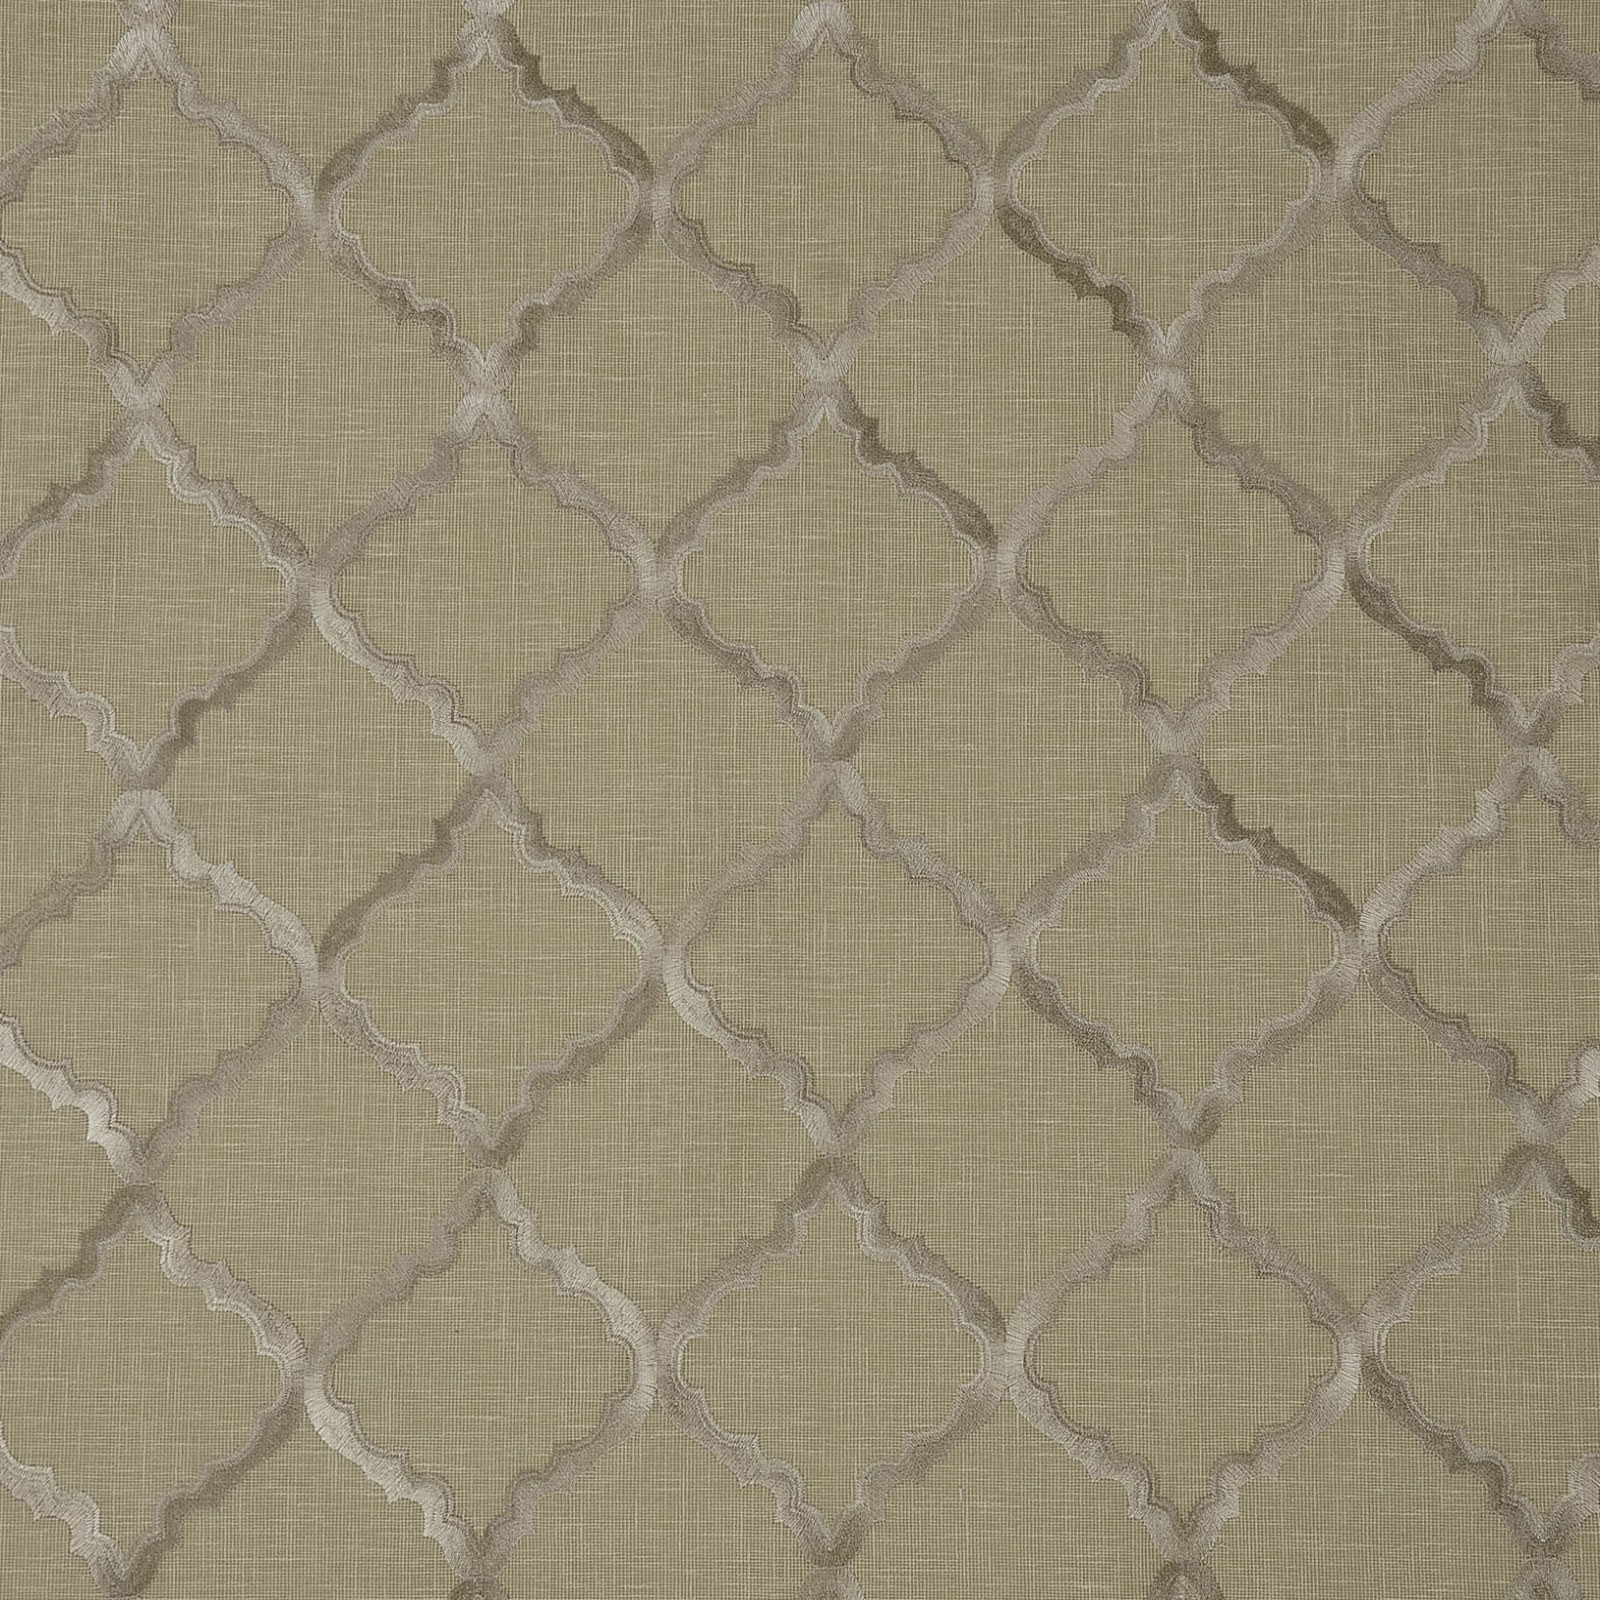 Taupe Metallic And Beige Lattice Embroidery Drapery And